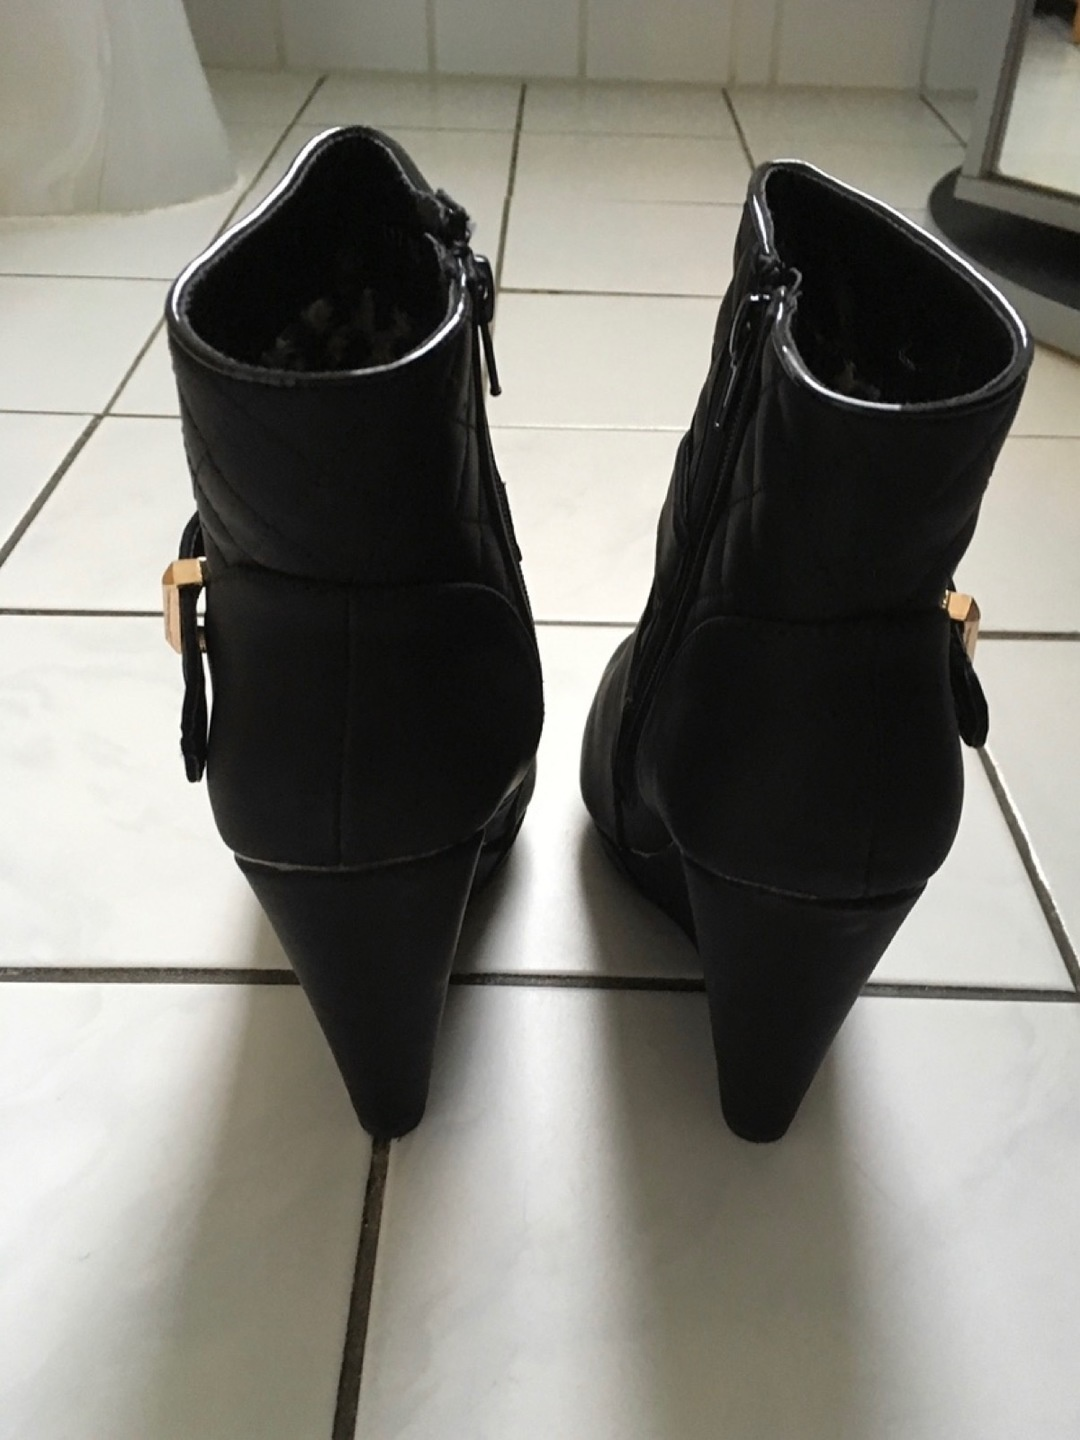 Women's boots - JULIET photo 4